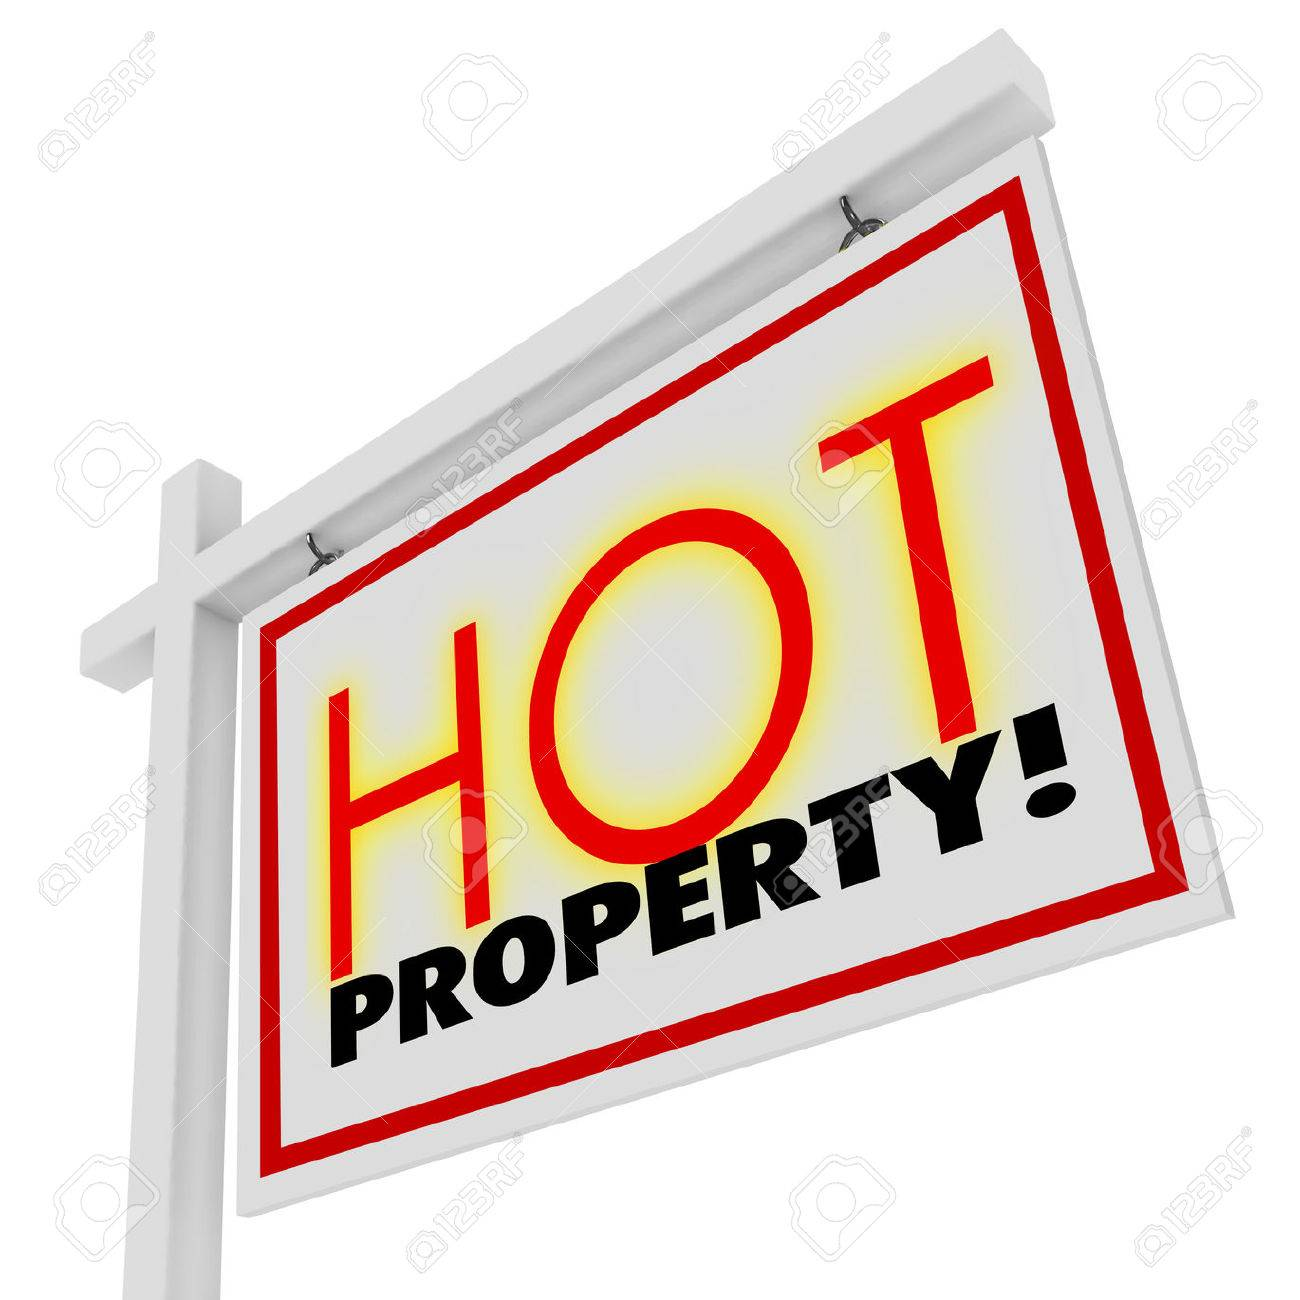 Hot Houses For Sale Hot Property Words In Sizzling Red Letters On A White Home Or